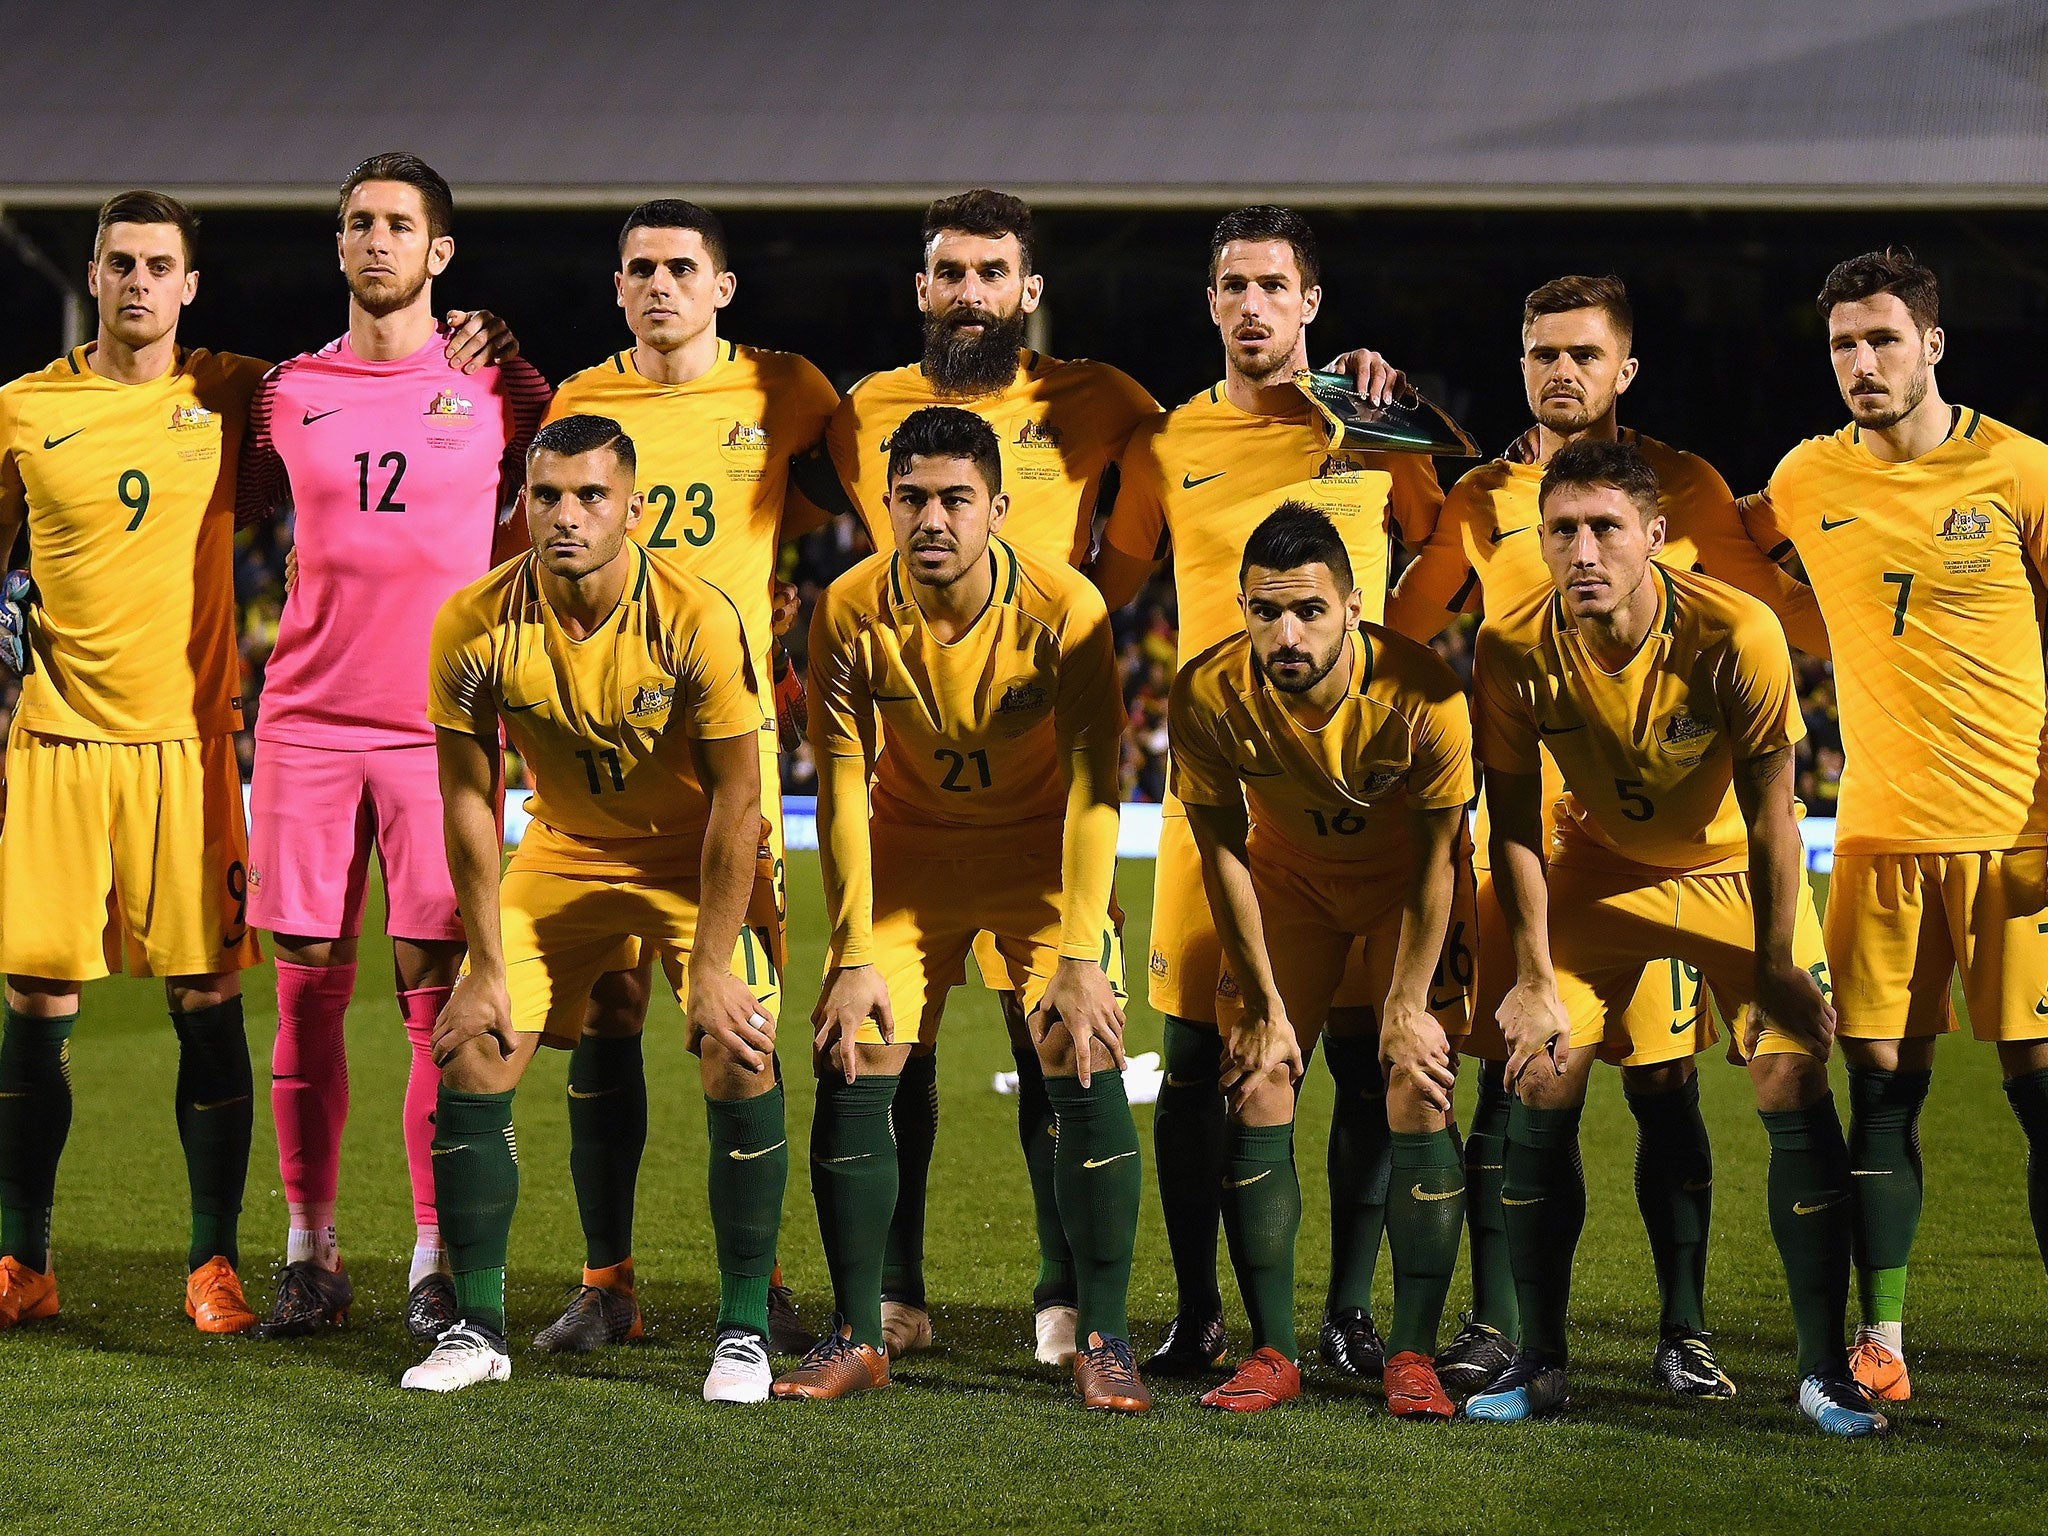 Australia World Cup squad guide: Full fixtures, group, ones to watch